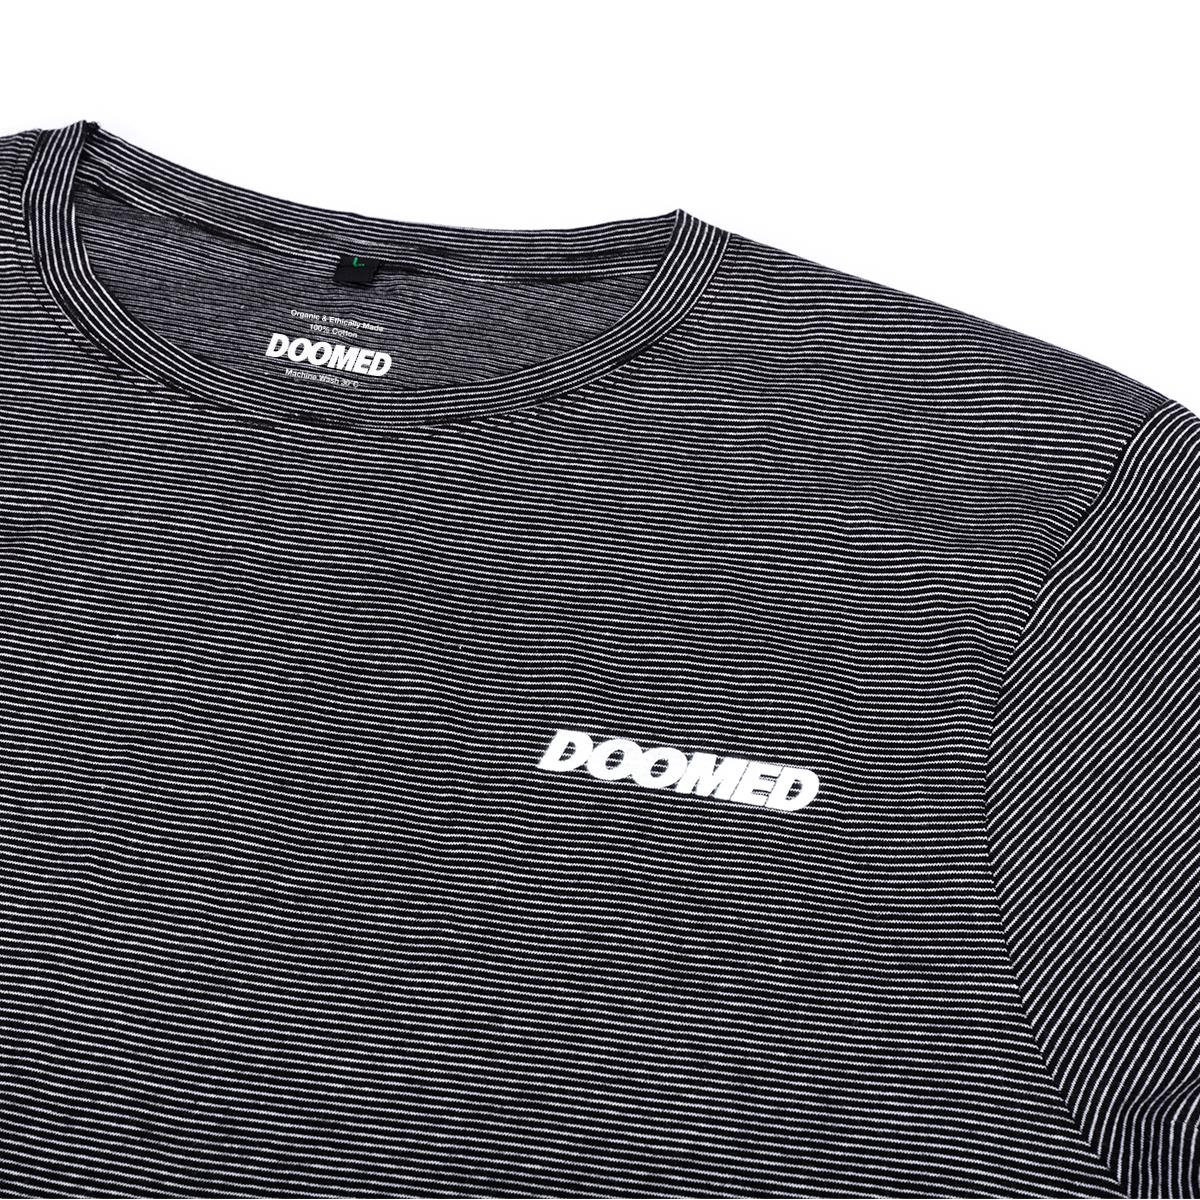 Doomed Zonal T-Shirt - White/Black